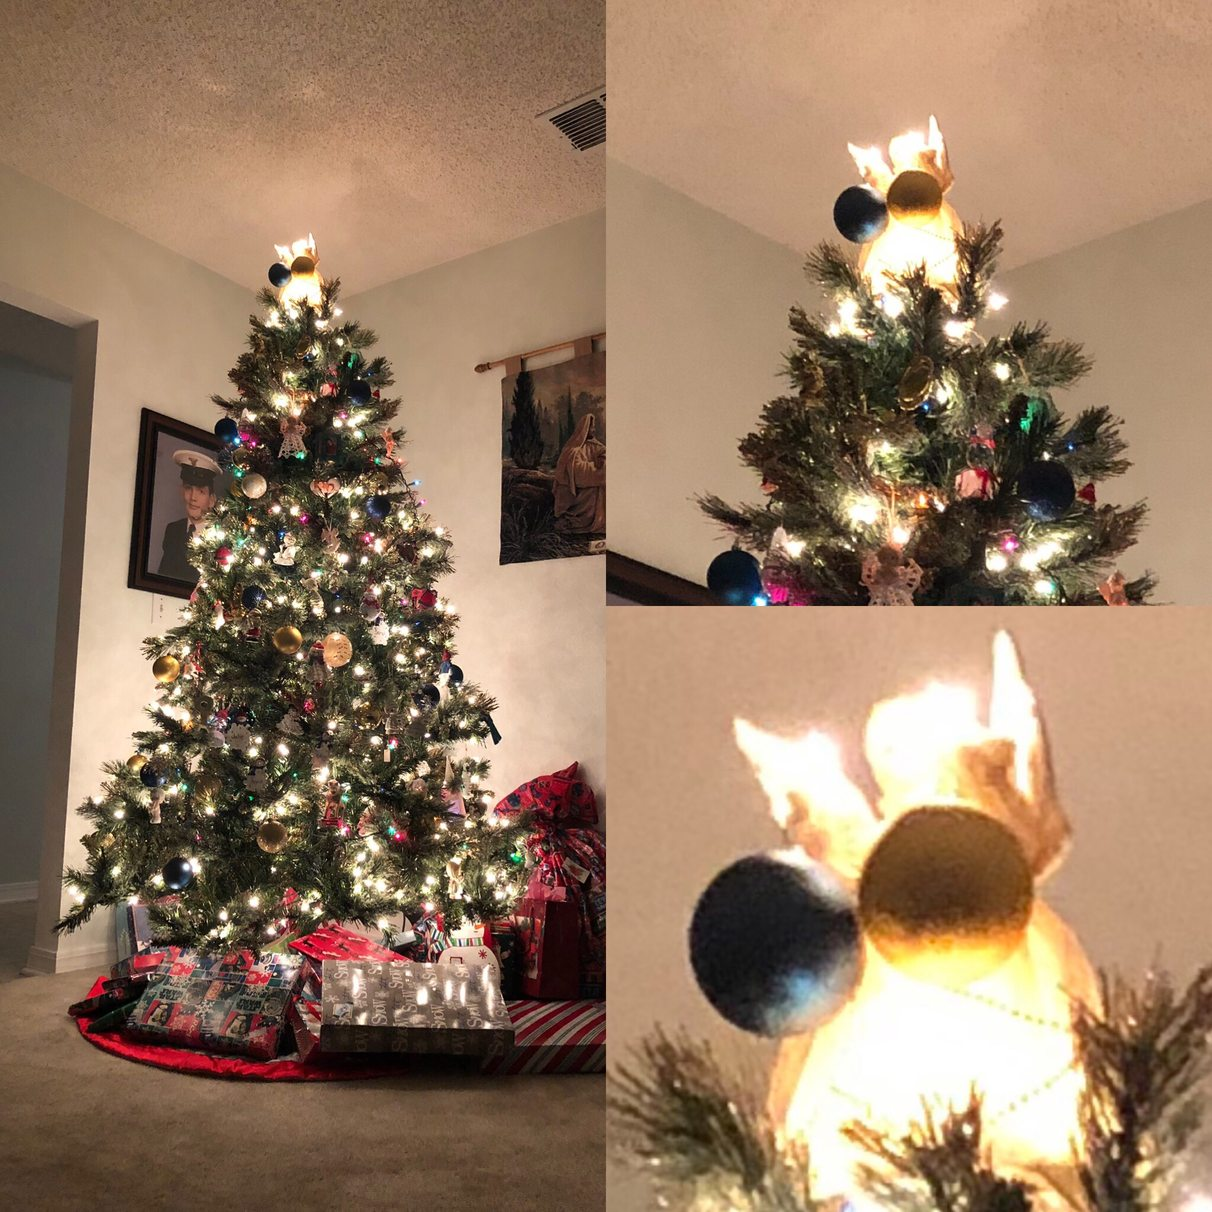 when your brothers decorate the tree... - meme